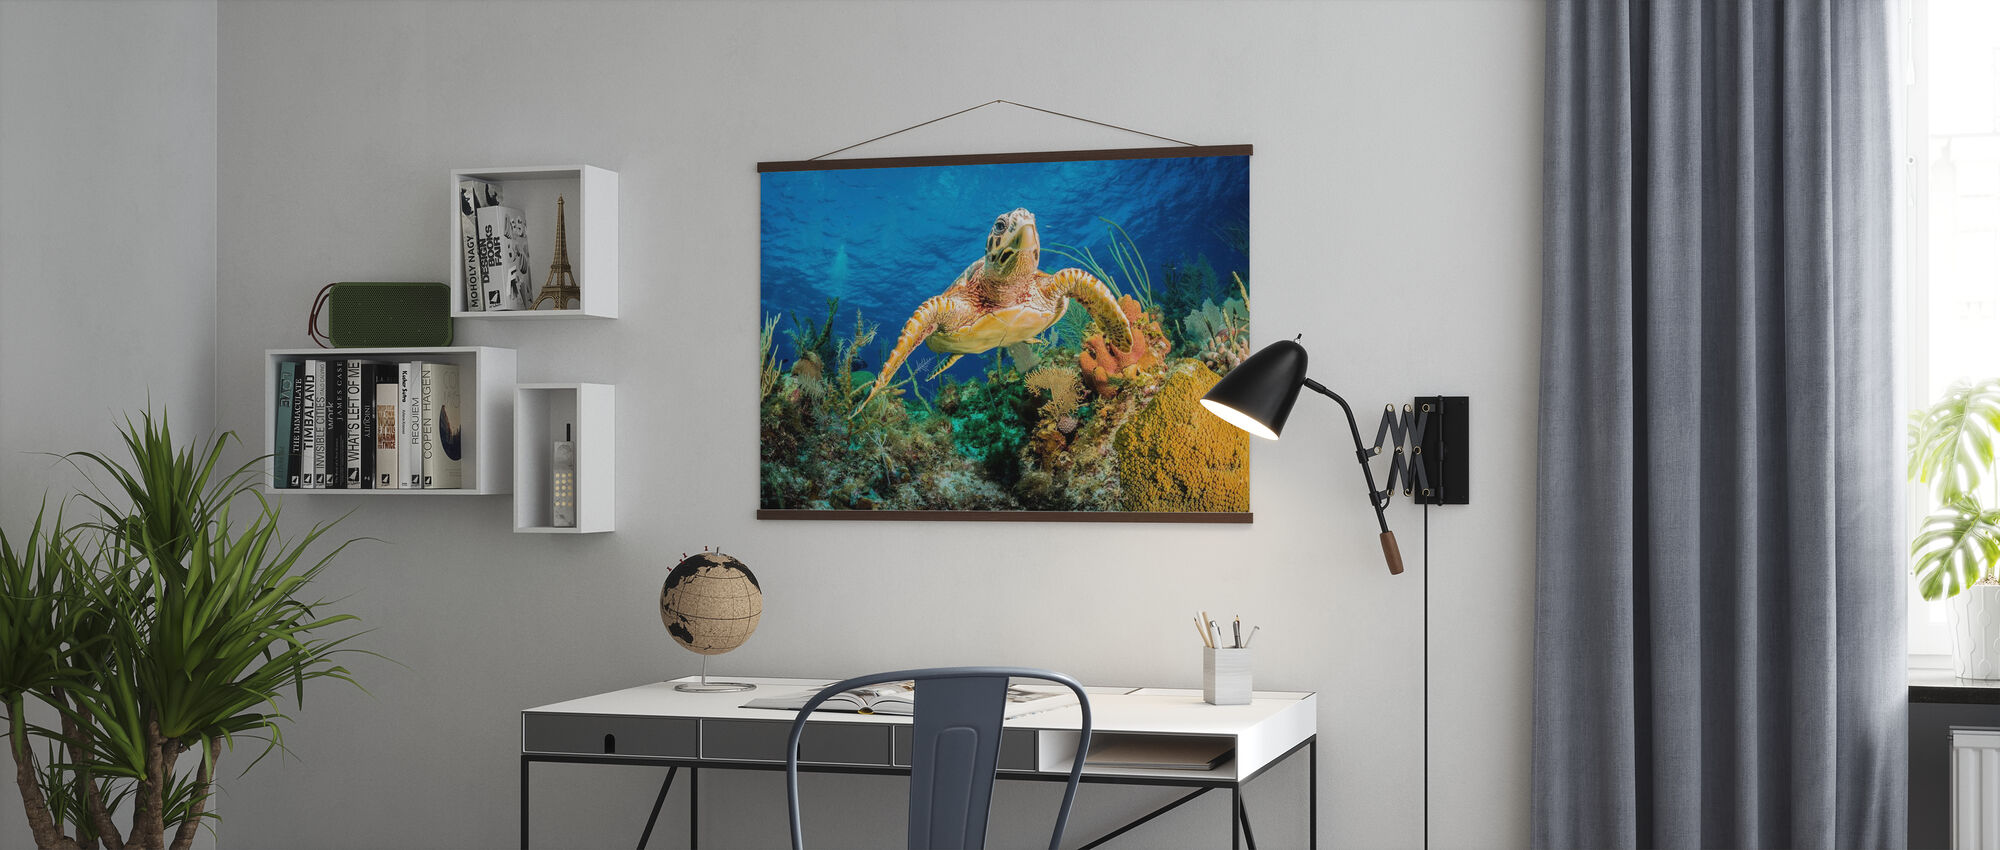 Hawksbill Turtle Swimming - Poster - Office